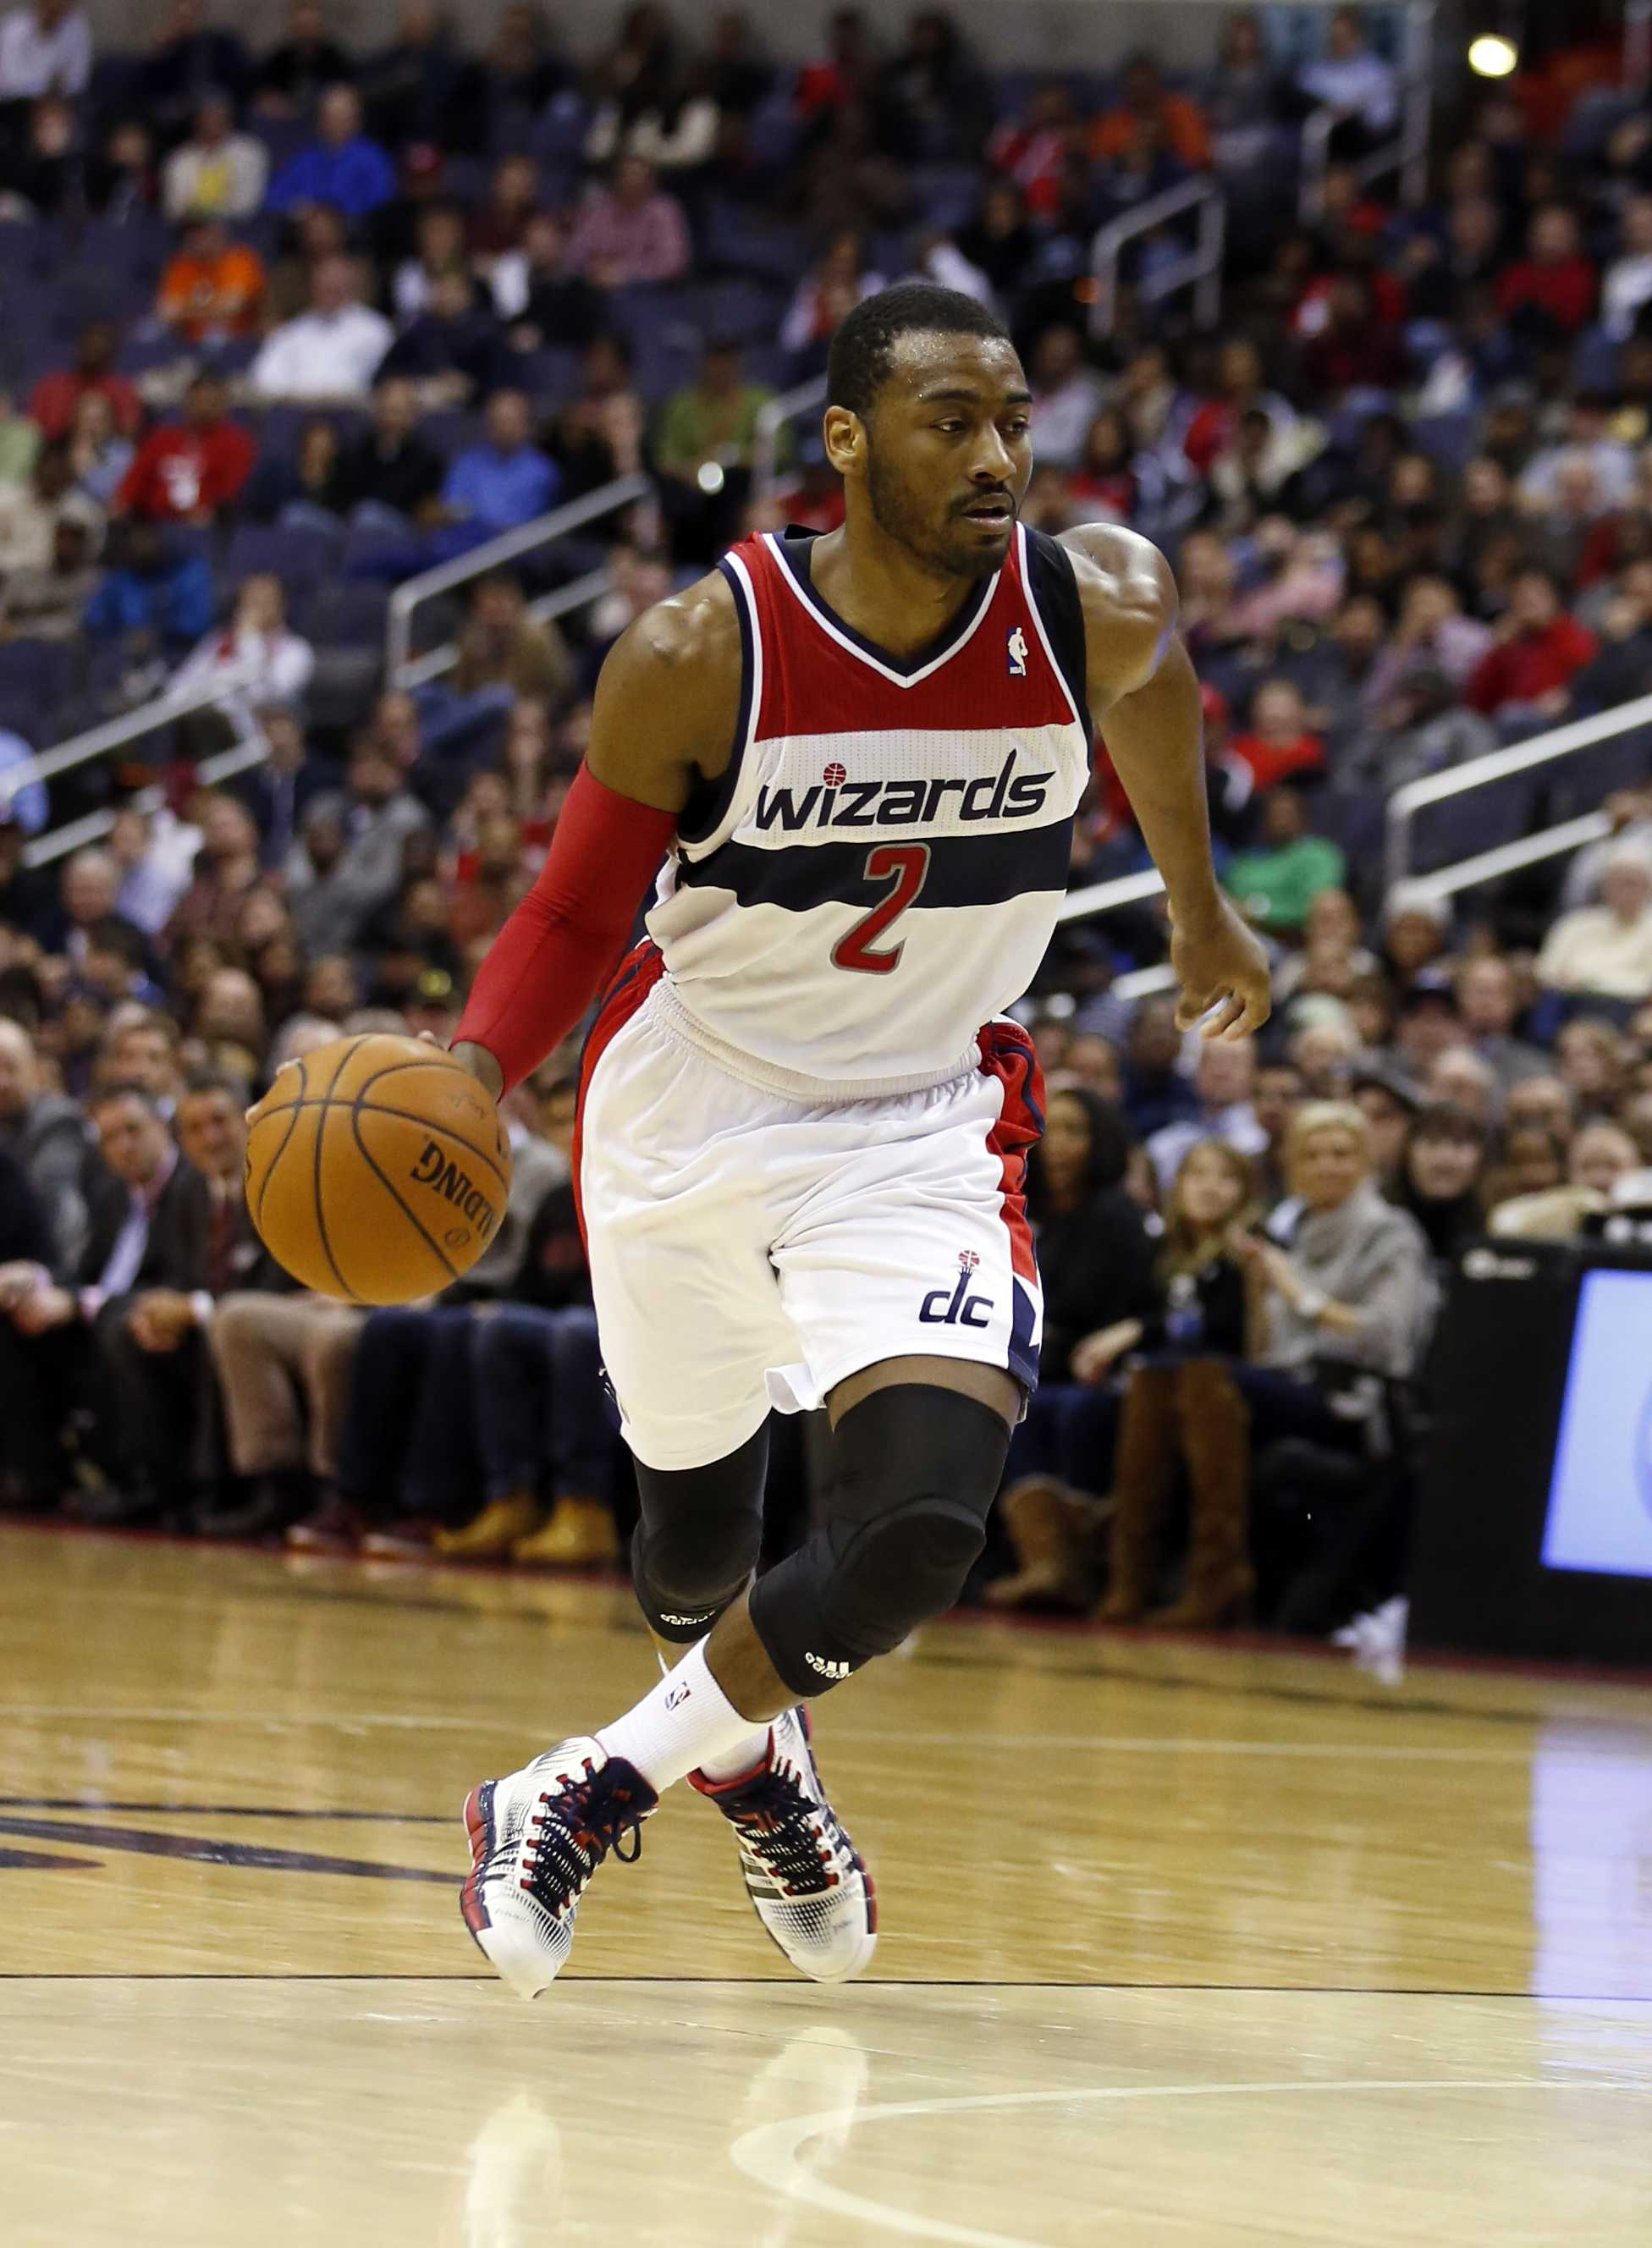 Wizards achieve first winning record in four years – The Black and White